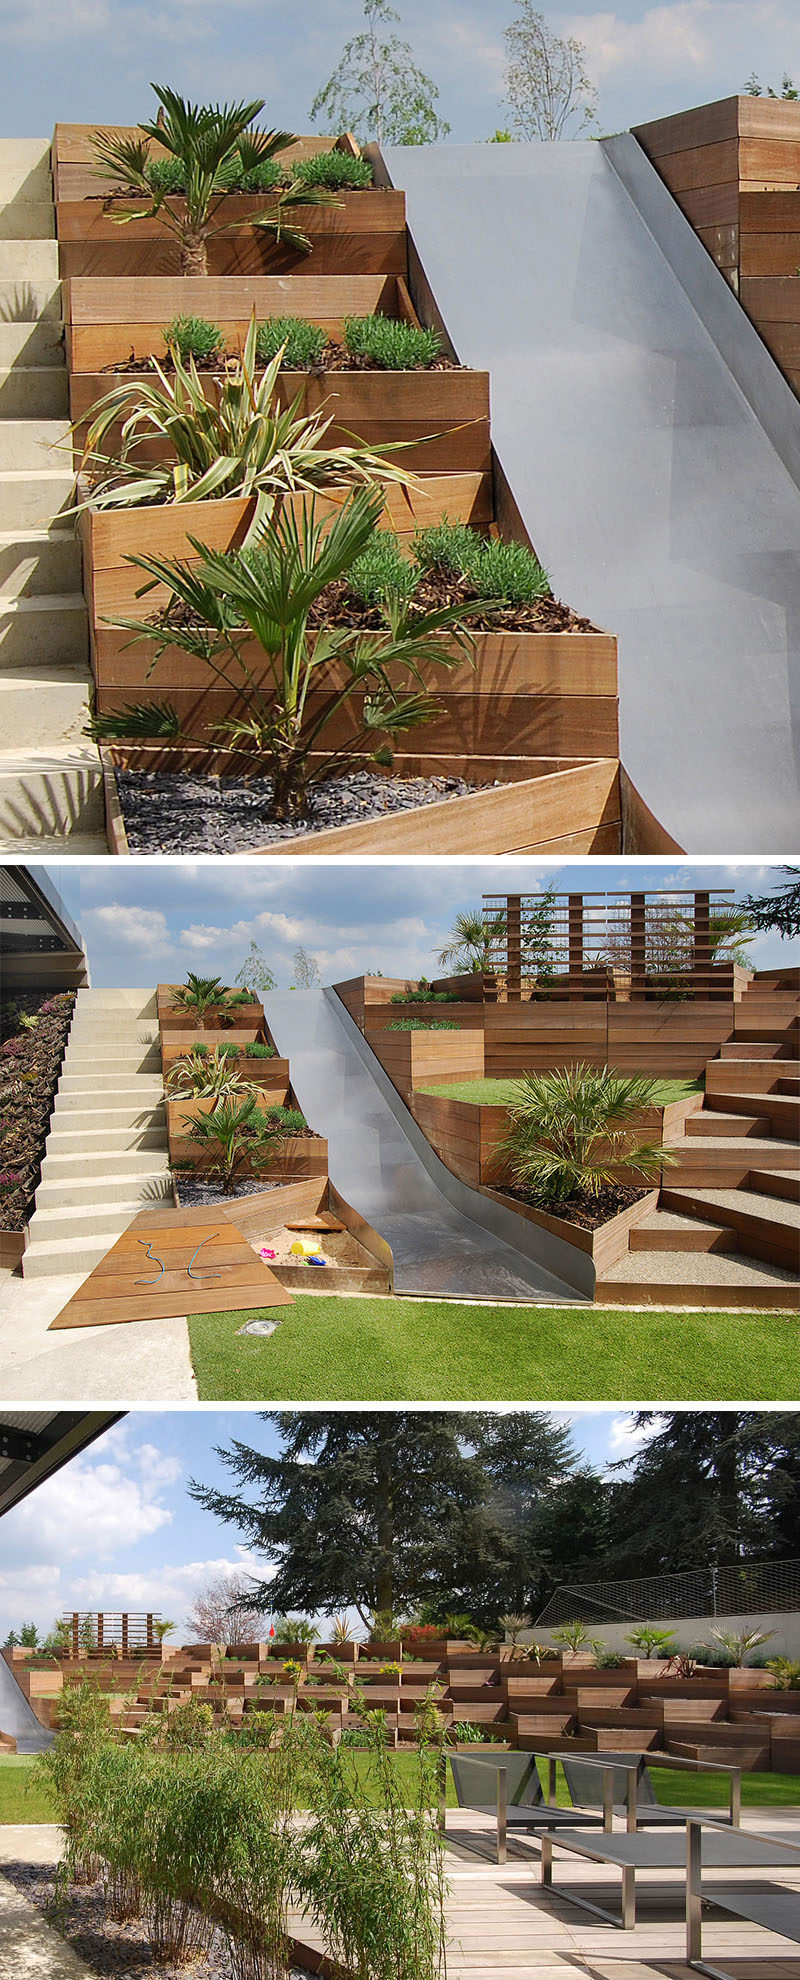 12 Ideas For Including Built-In Wooden Planters In Your Outdoor Space // This backyard with a slide, makes use of triangular wooden planters to deal with the slope of the yard.